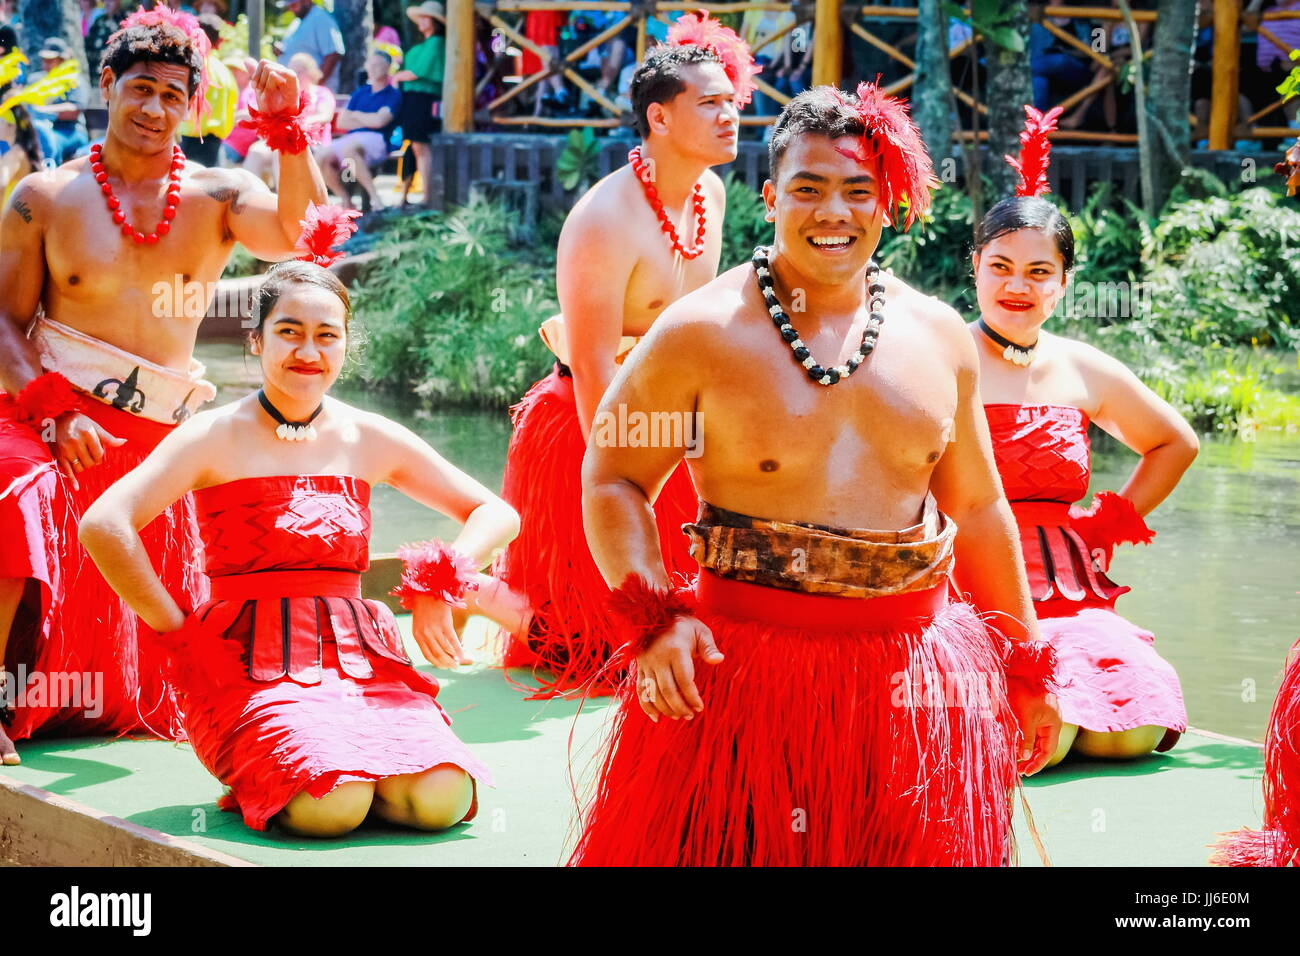 Honolulu, Hawaii - May 27, 2016: Young Polynesian Performers entertaining visitors at the Polynesian Cultural Center - Stock Image